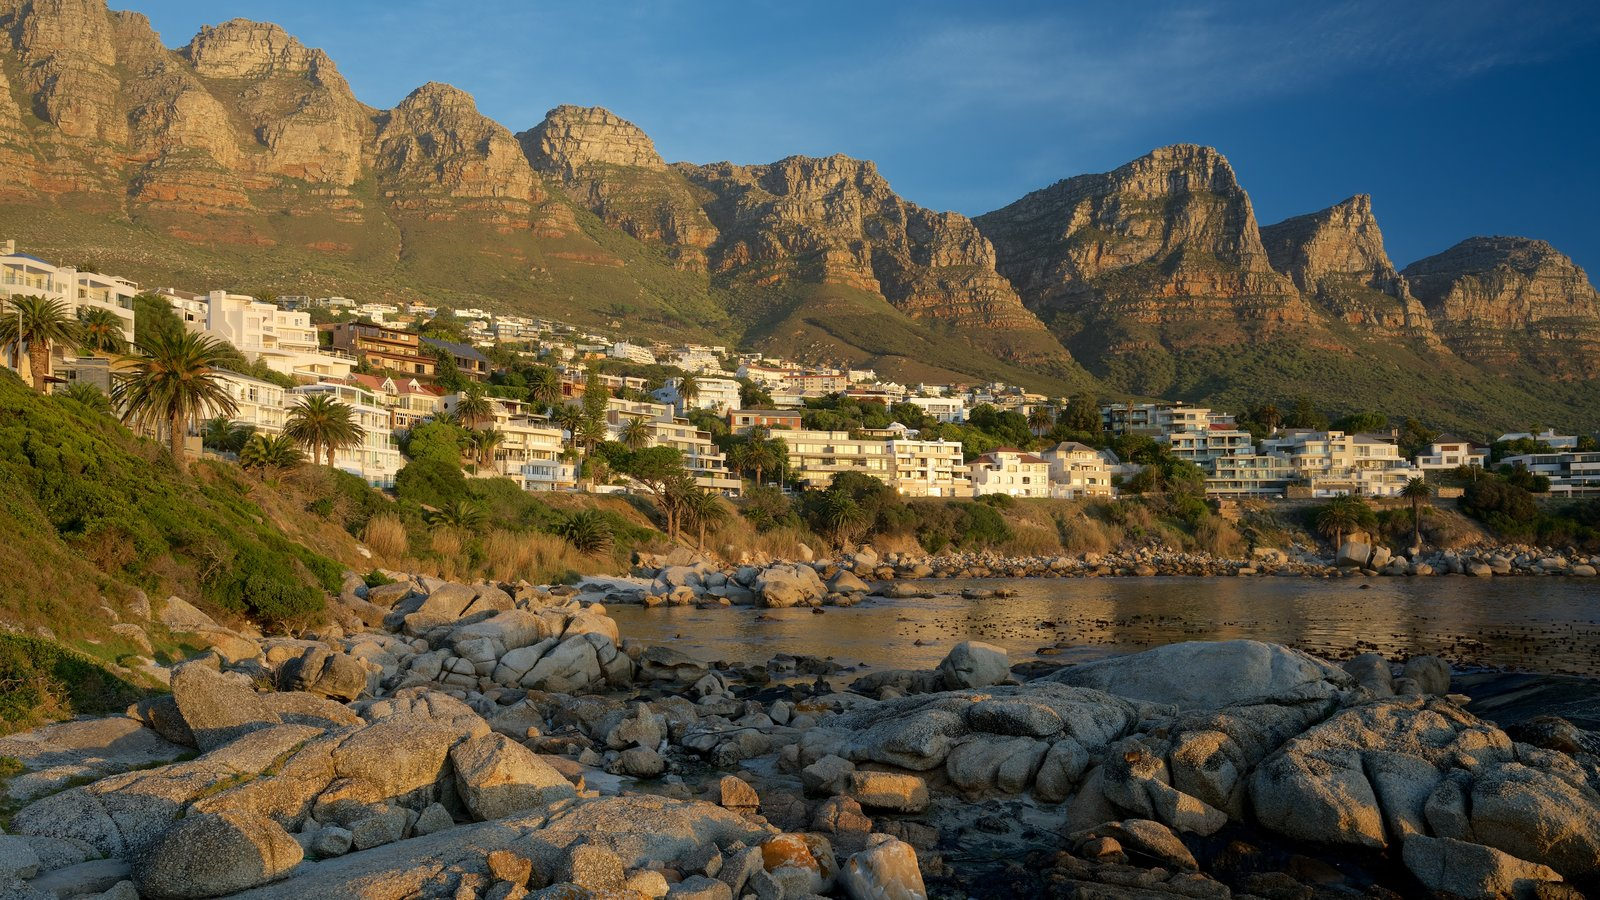 Camps Bay Beach which includes rugged coastline and a coastal town